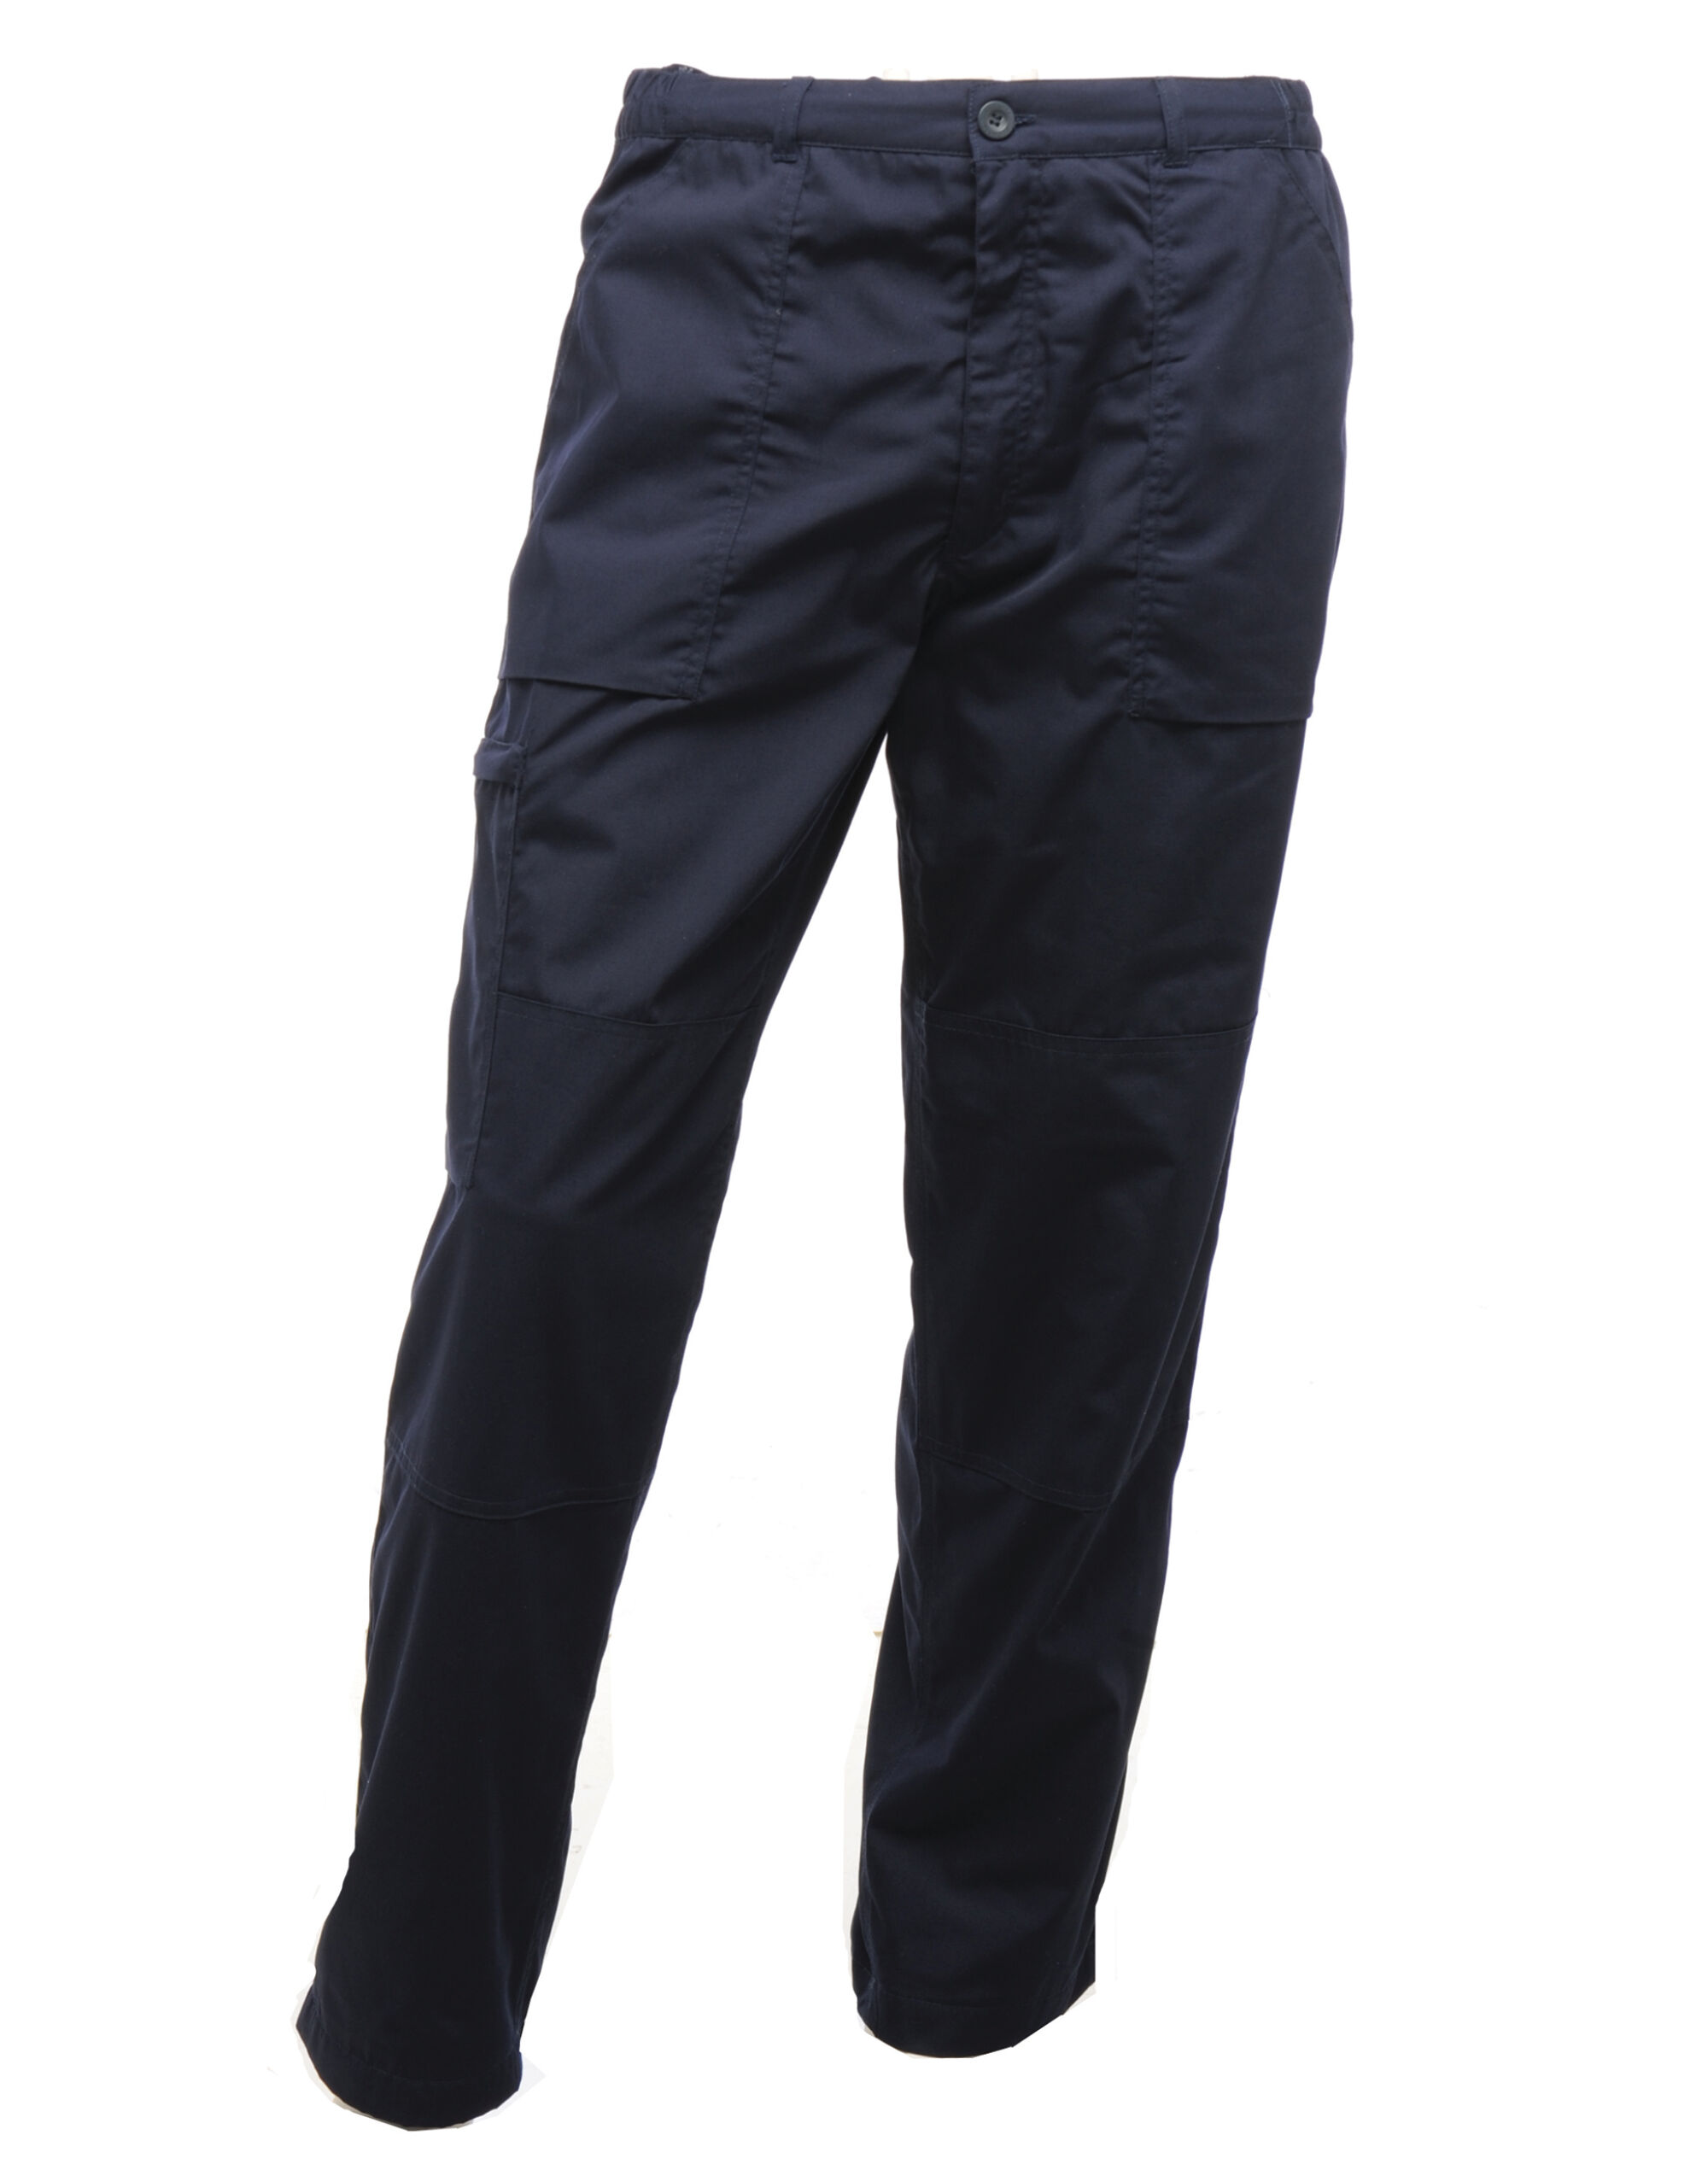 New Lined Action Trouser (Long)